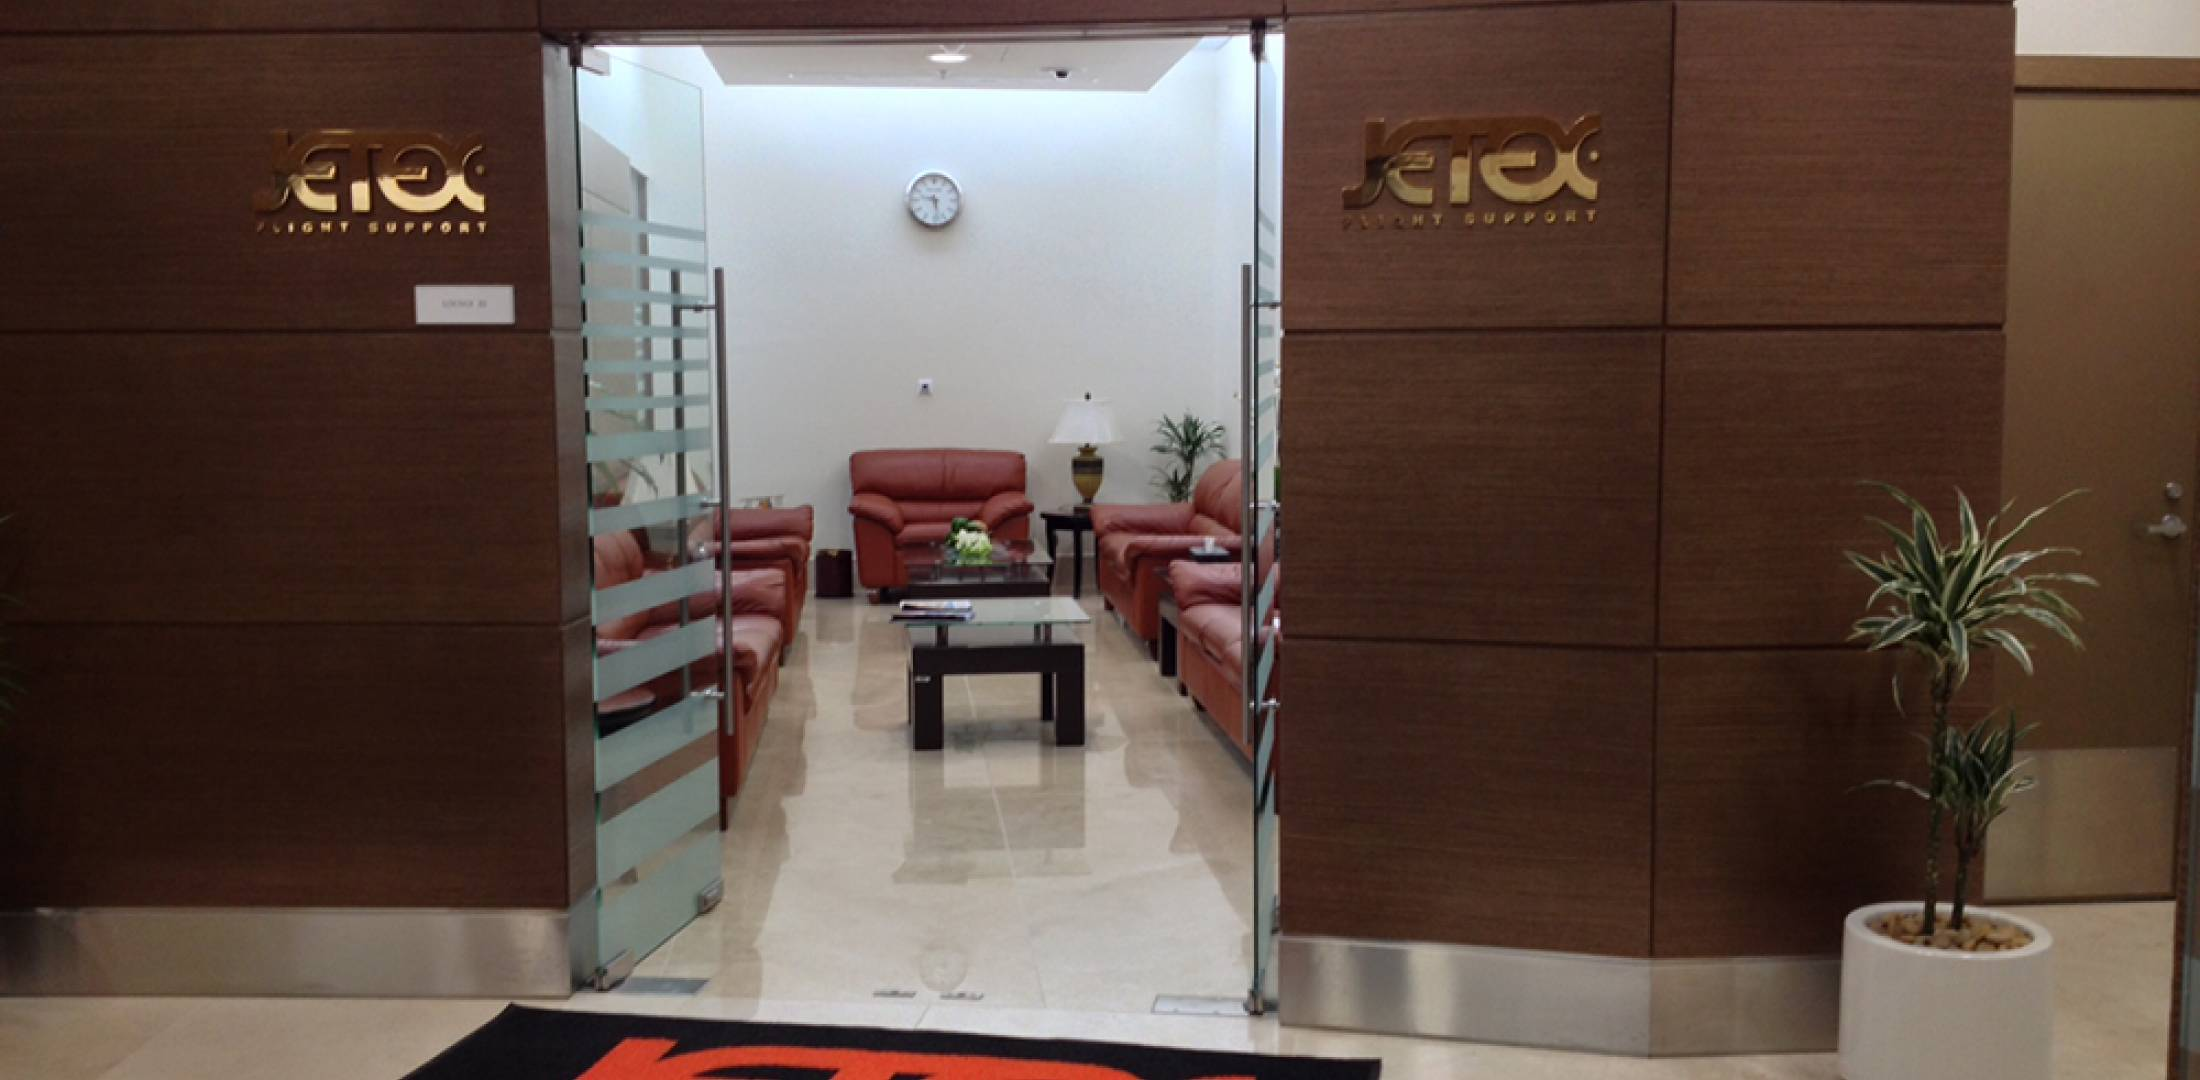 Jetex Flight Support opened its FBO at Dubai World Central/Al Maktoum International Airport in a temporary facility shared with Jet Aviation and ExecuJet.